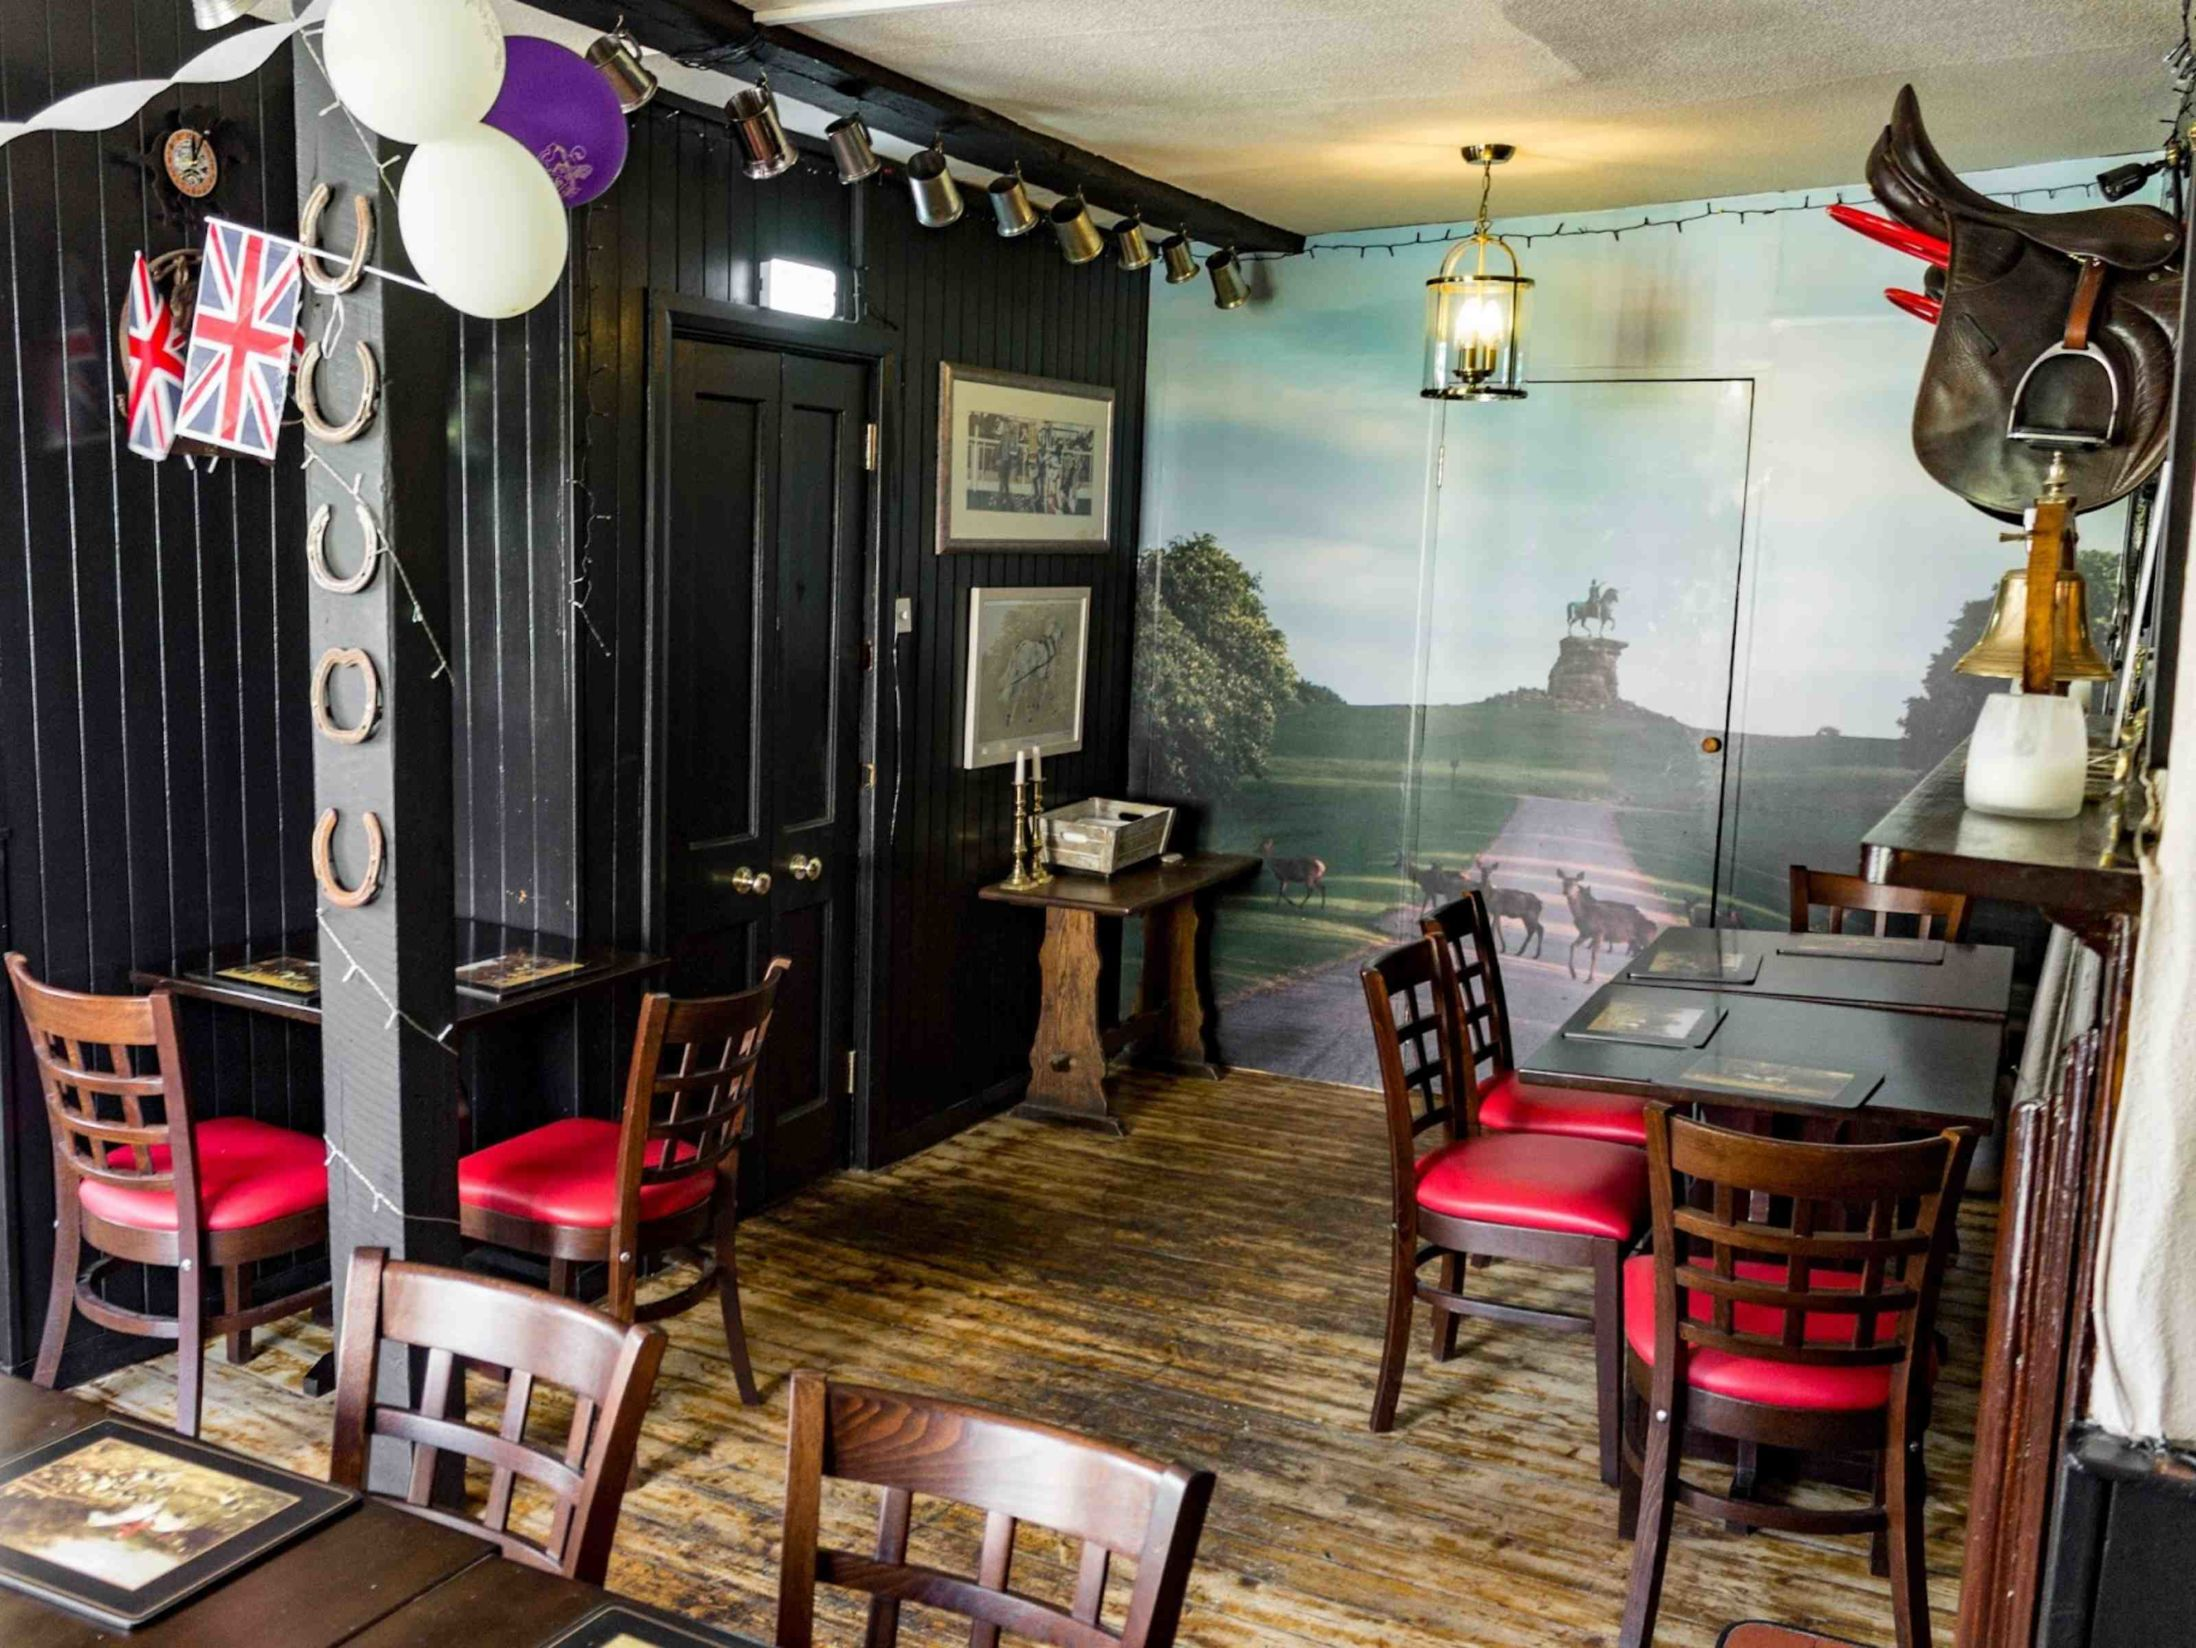 Best Pubs in Windsor - The Horse & Groom